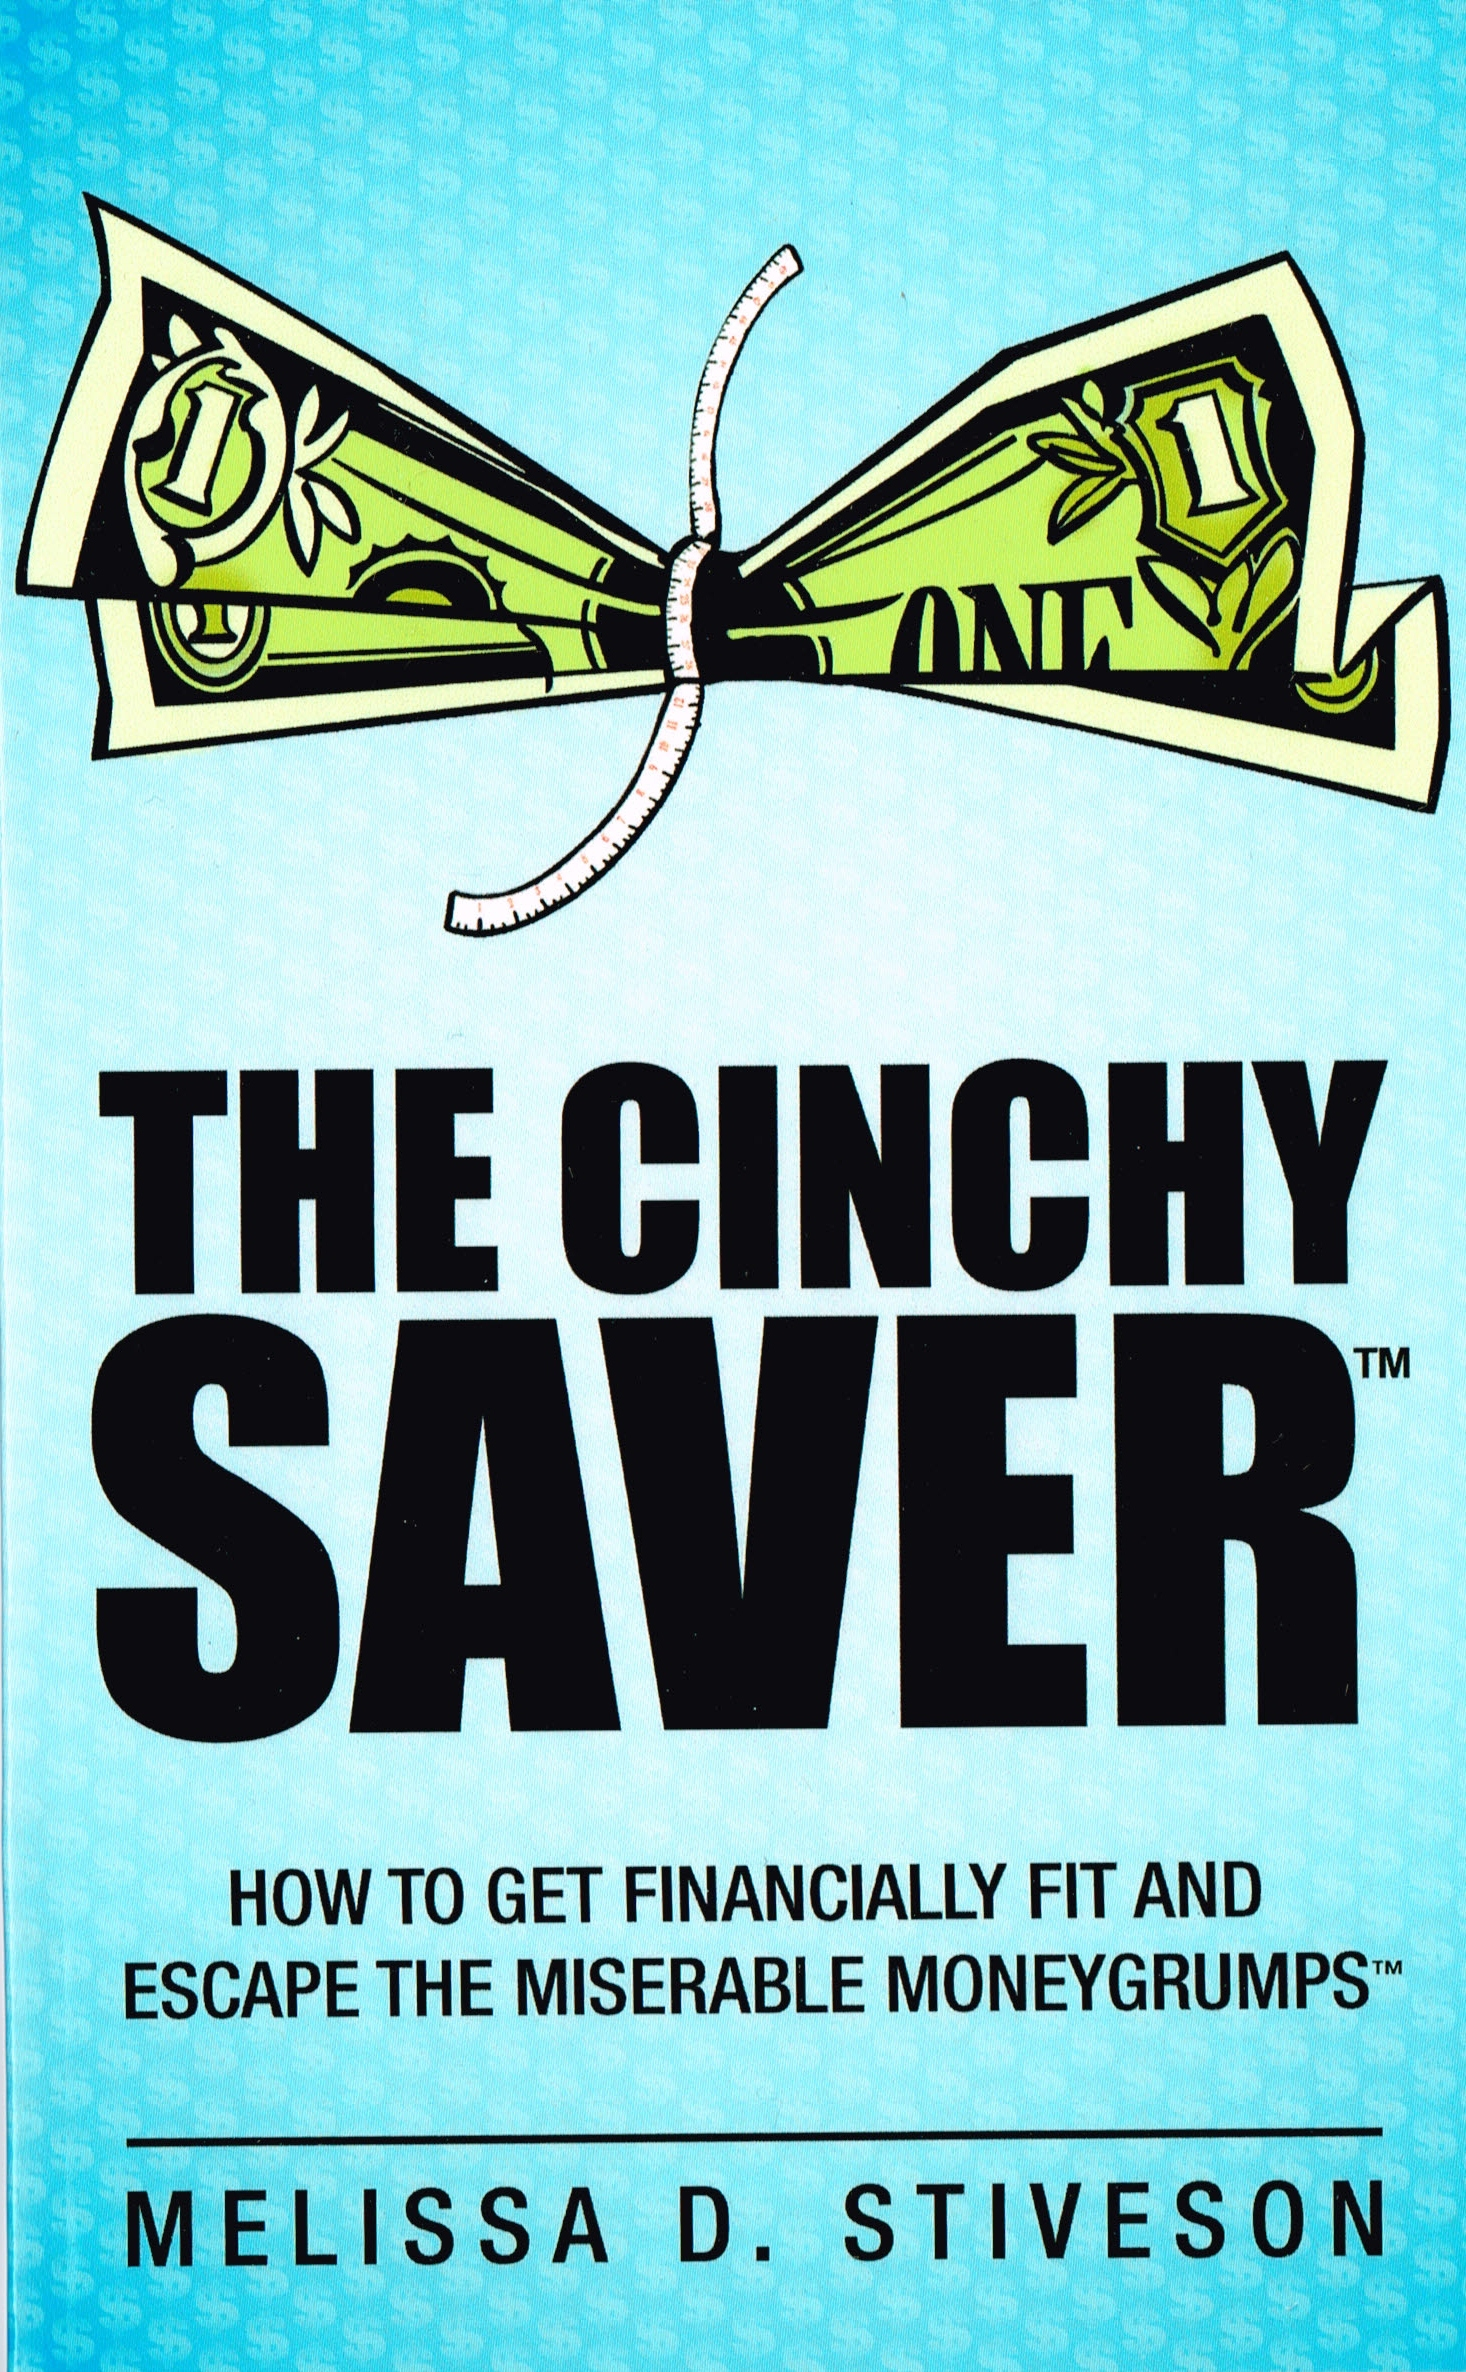 THE CINCHY SAVER™